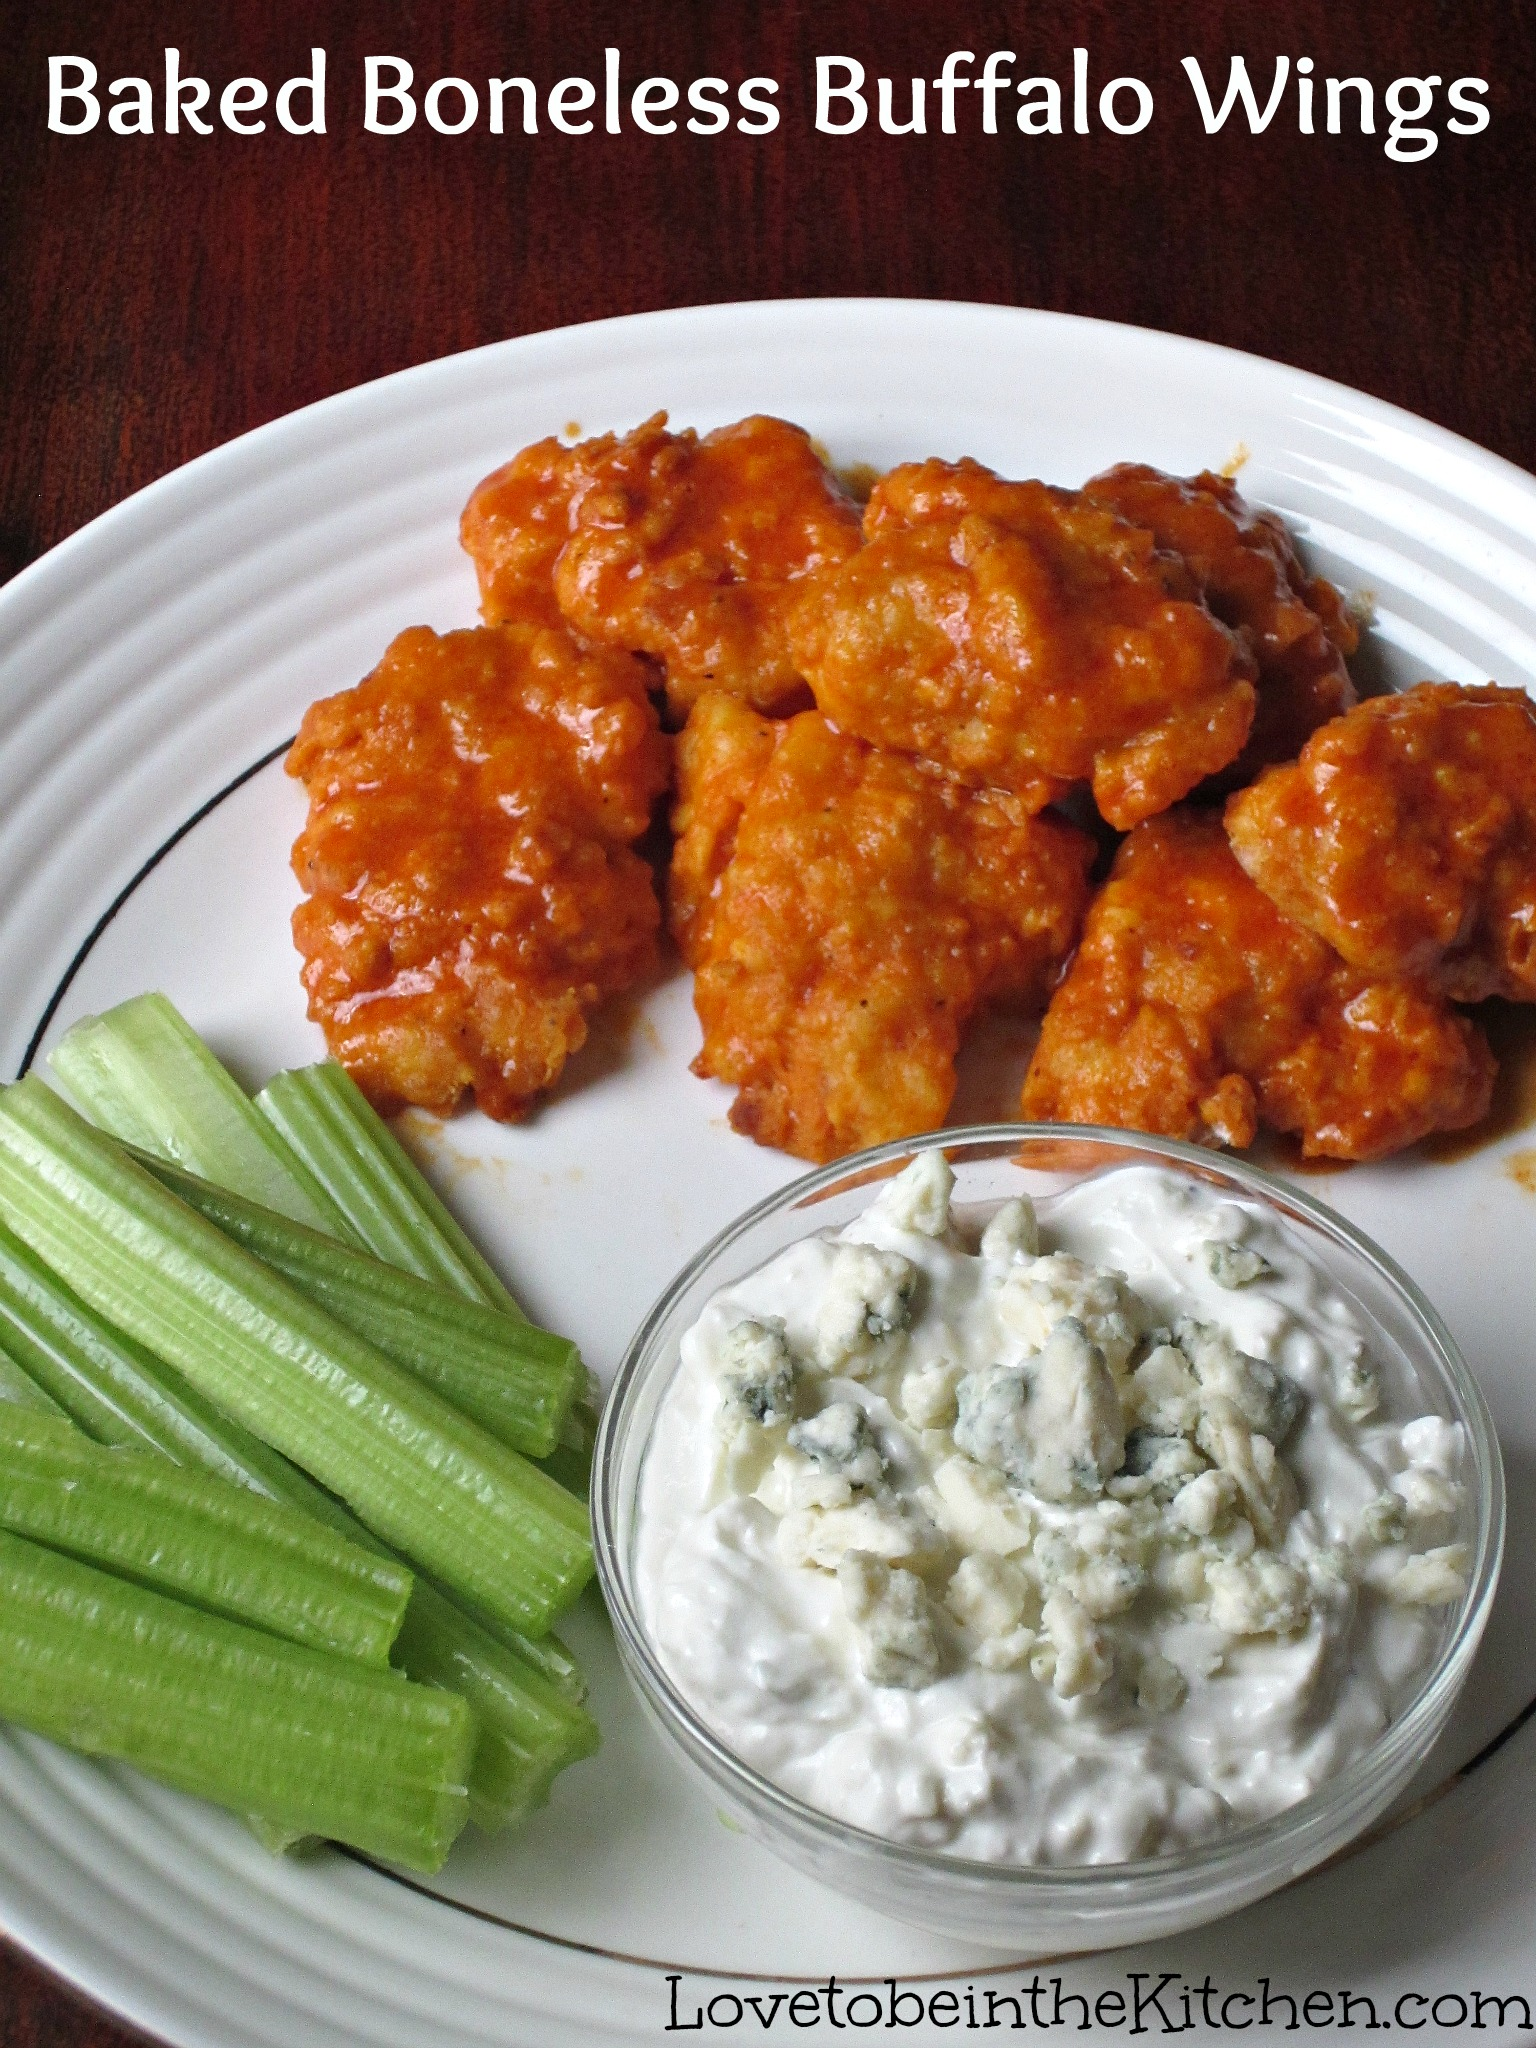 ... Baked Boneless Buffalo Wings ! Perfect for game days, parties etc